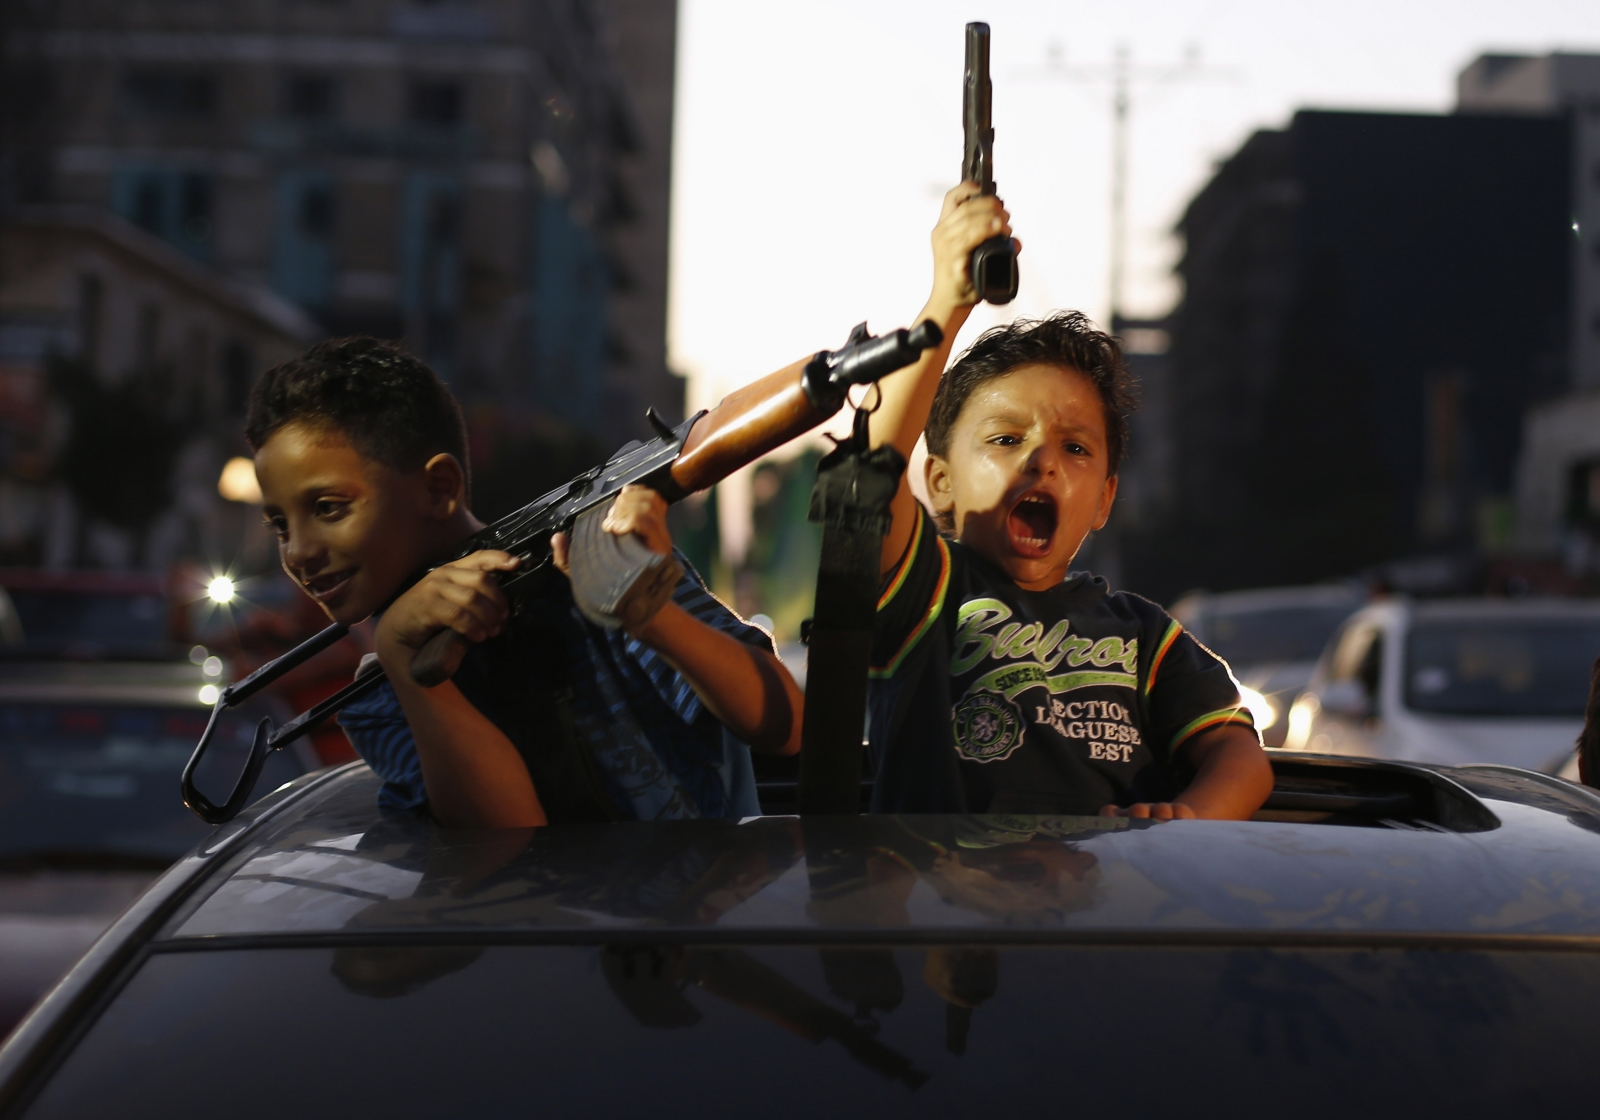 Young boys brandishing apparently real guns celebrate peace for Gaza in a Israel / Palestine ceasefire